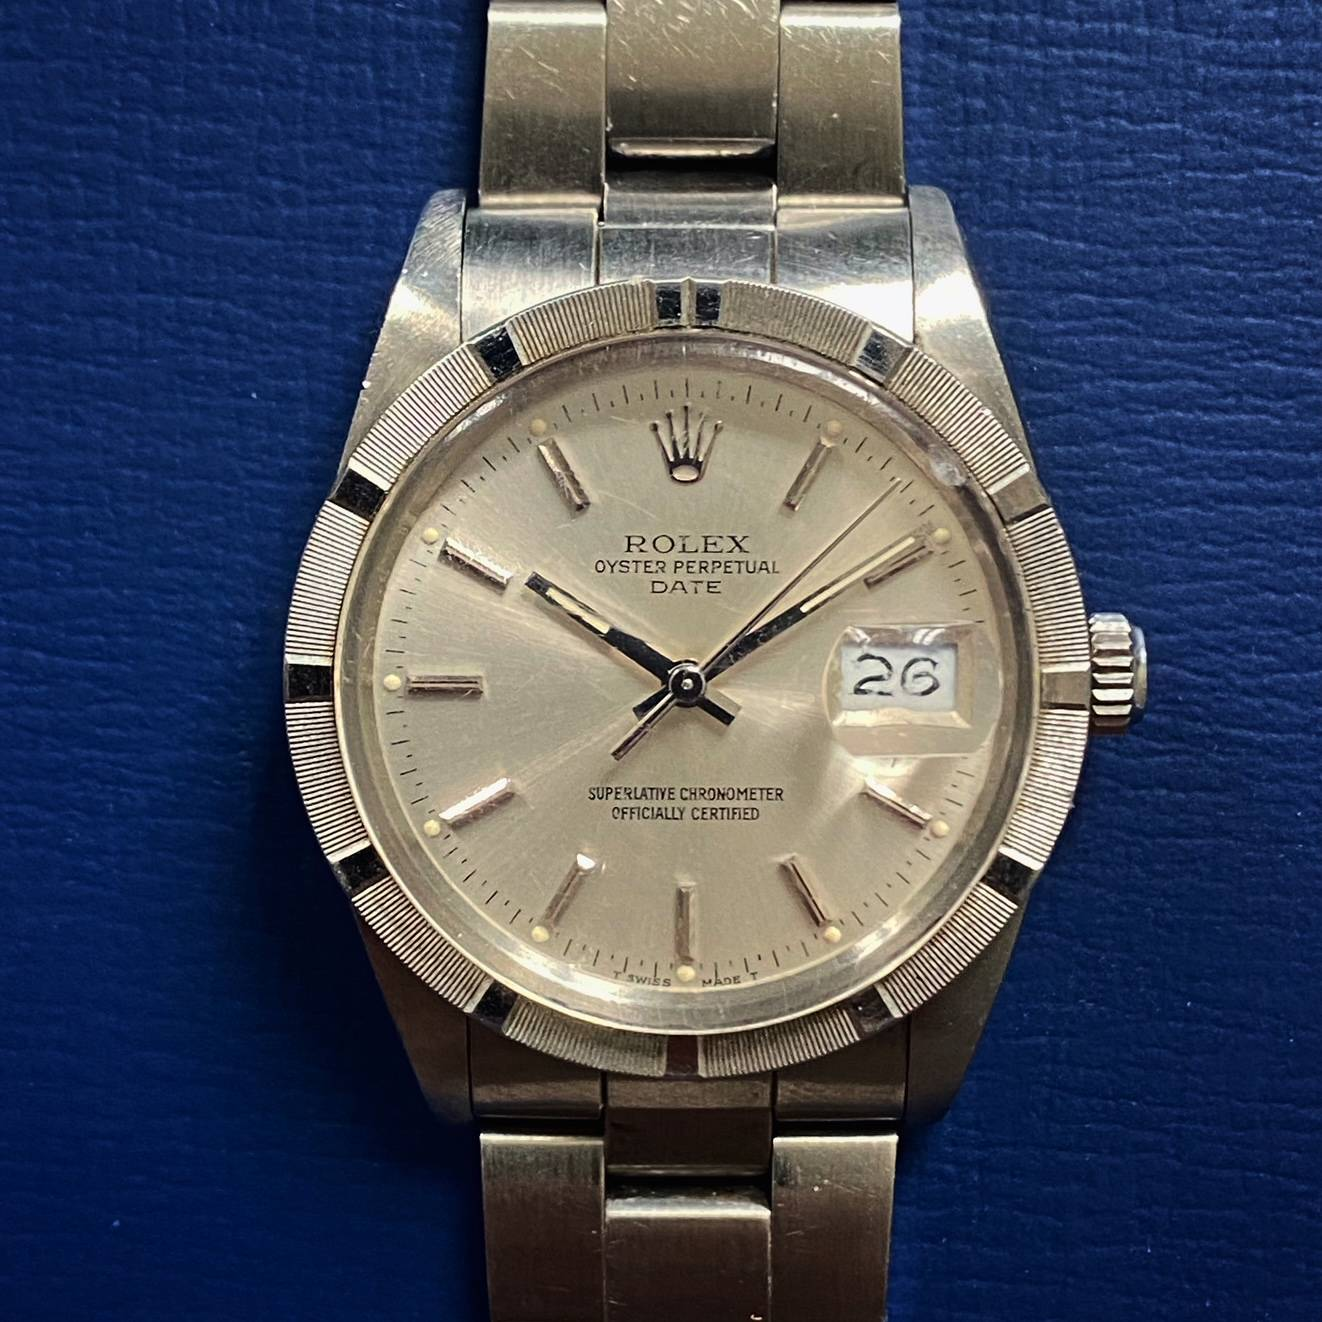 ROLEX OYSTER PERPETUAL DATE ENGINE TURNED BEZEL-1